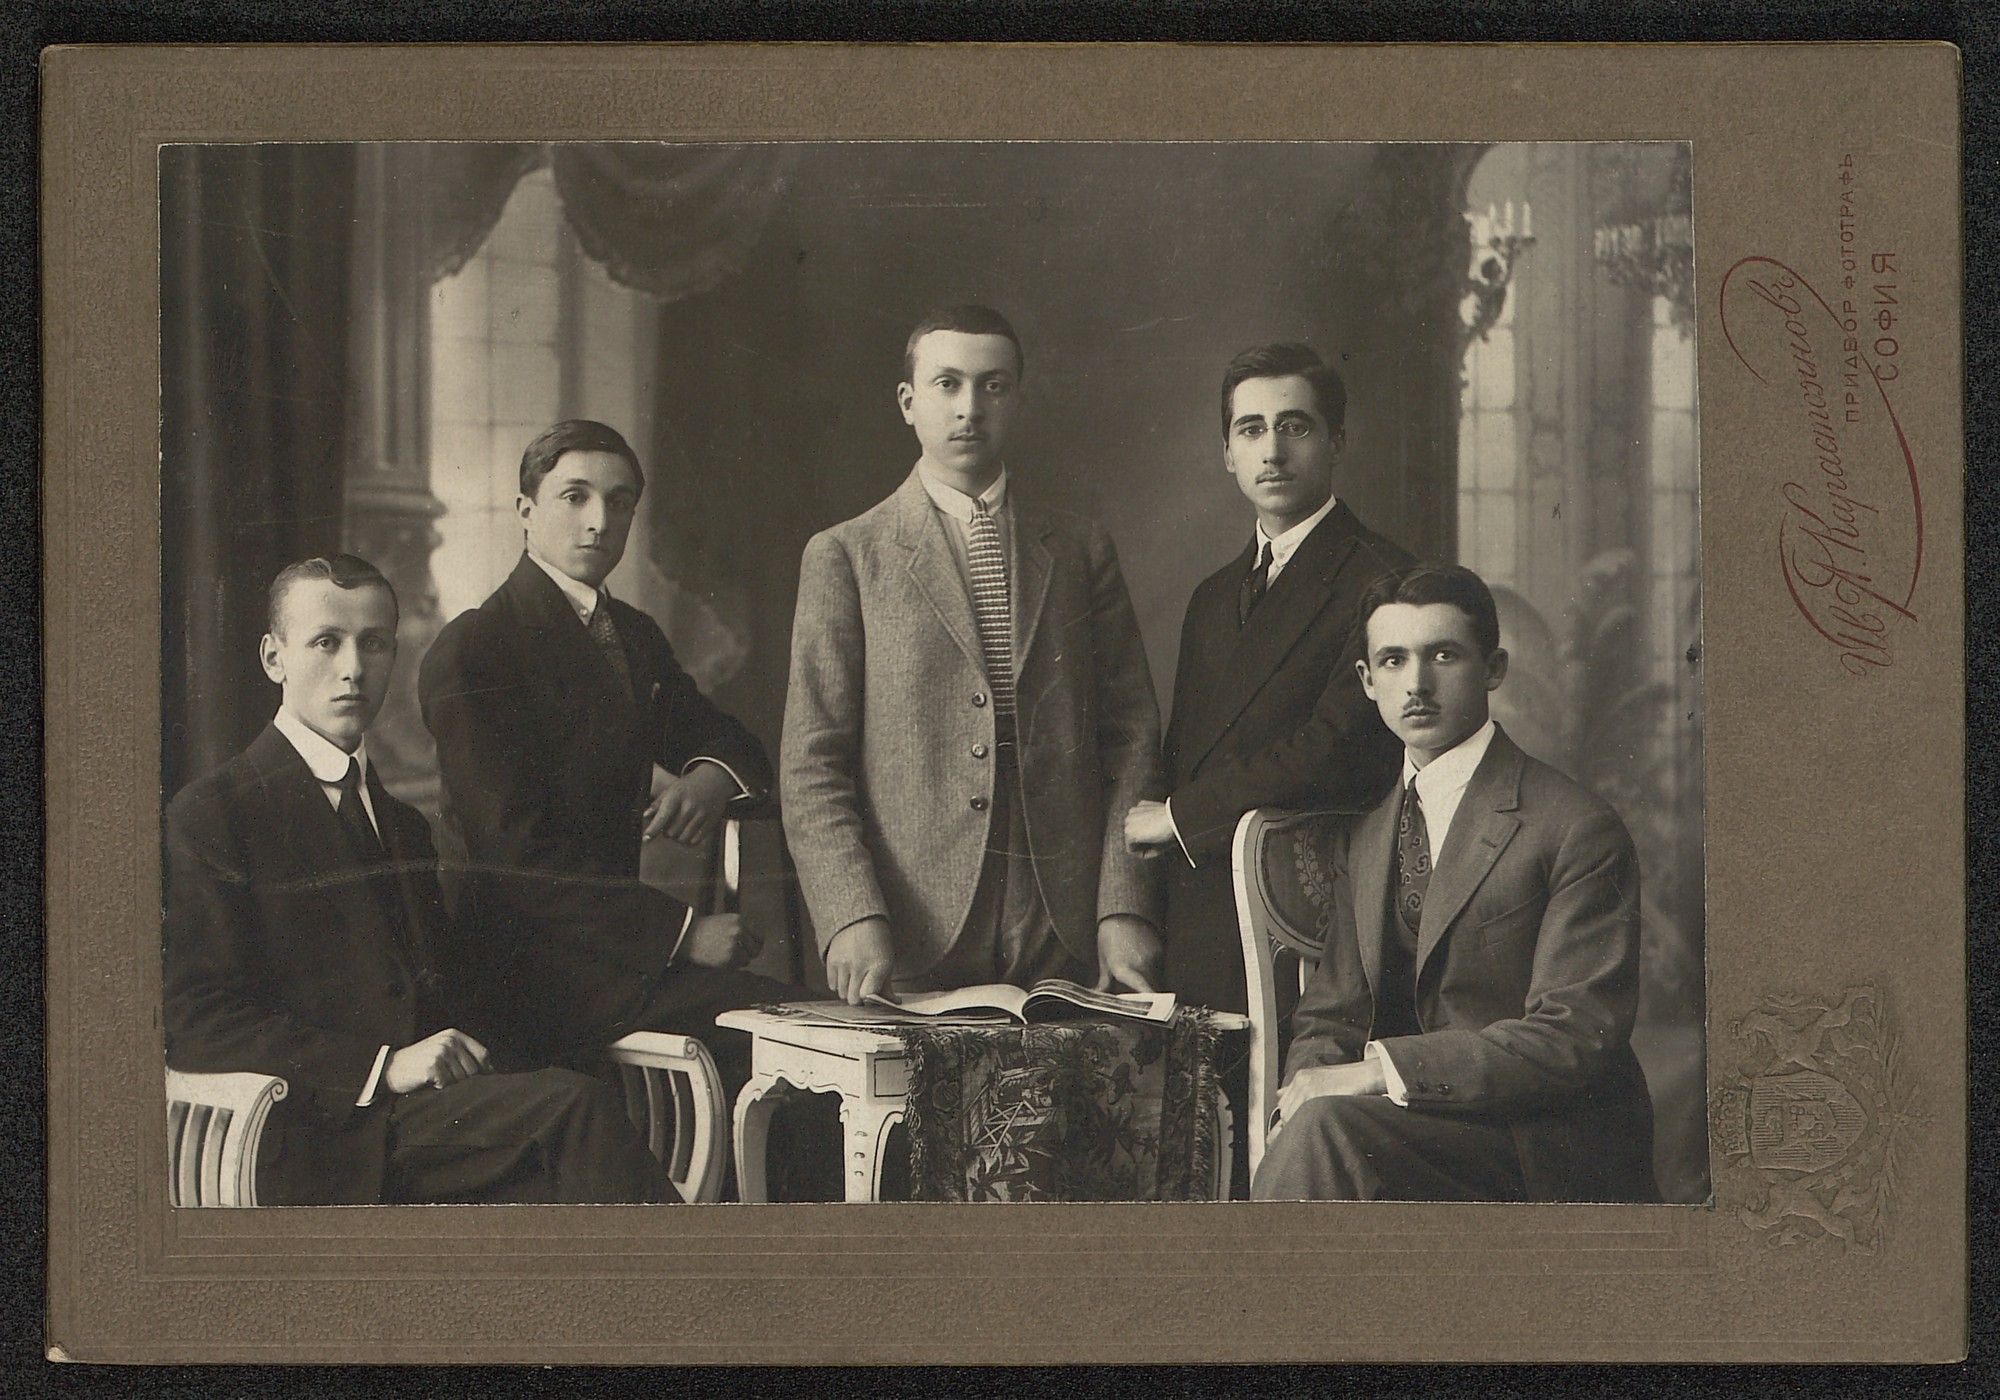 Group portrait of five men in urban clothes, © St. Cyril and St. Methodius National Library